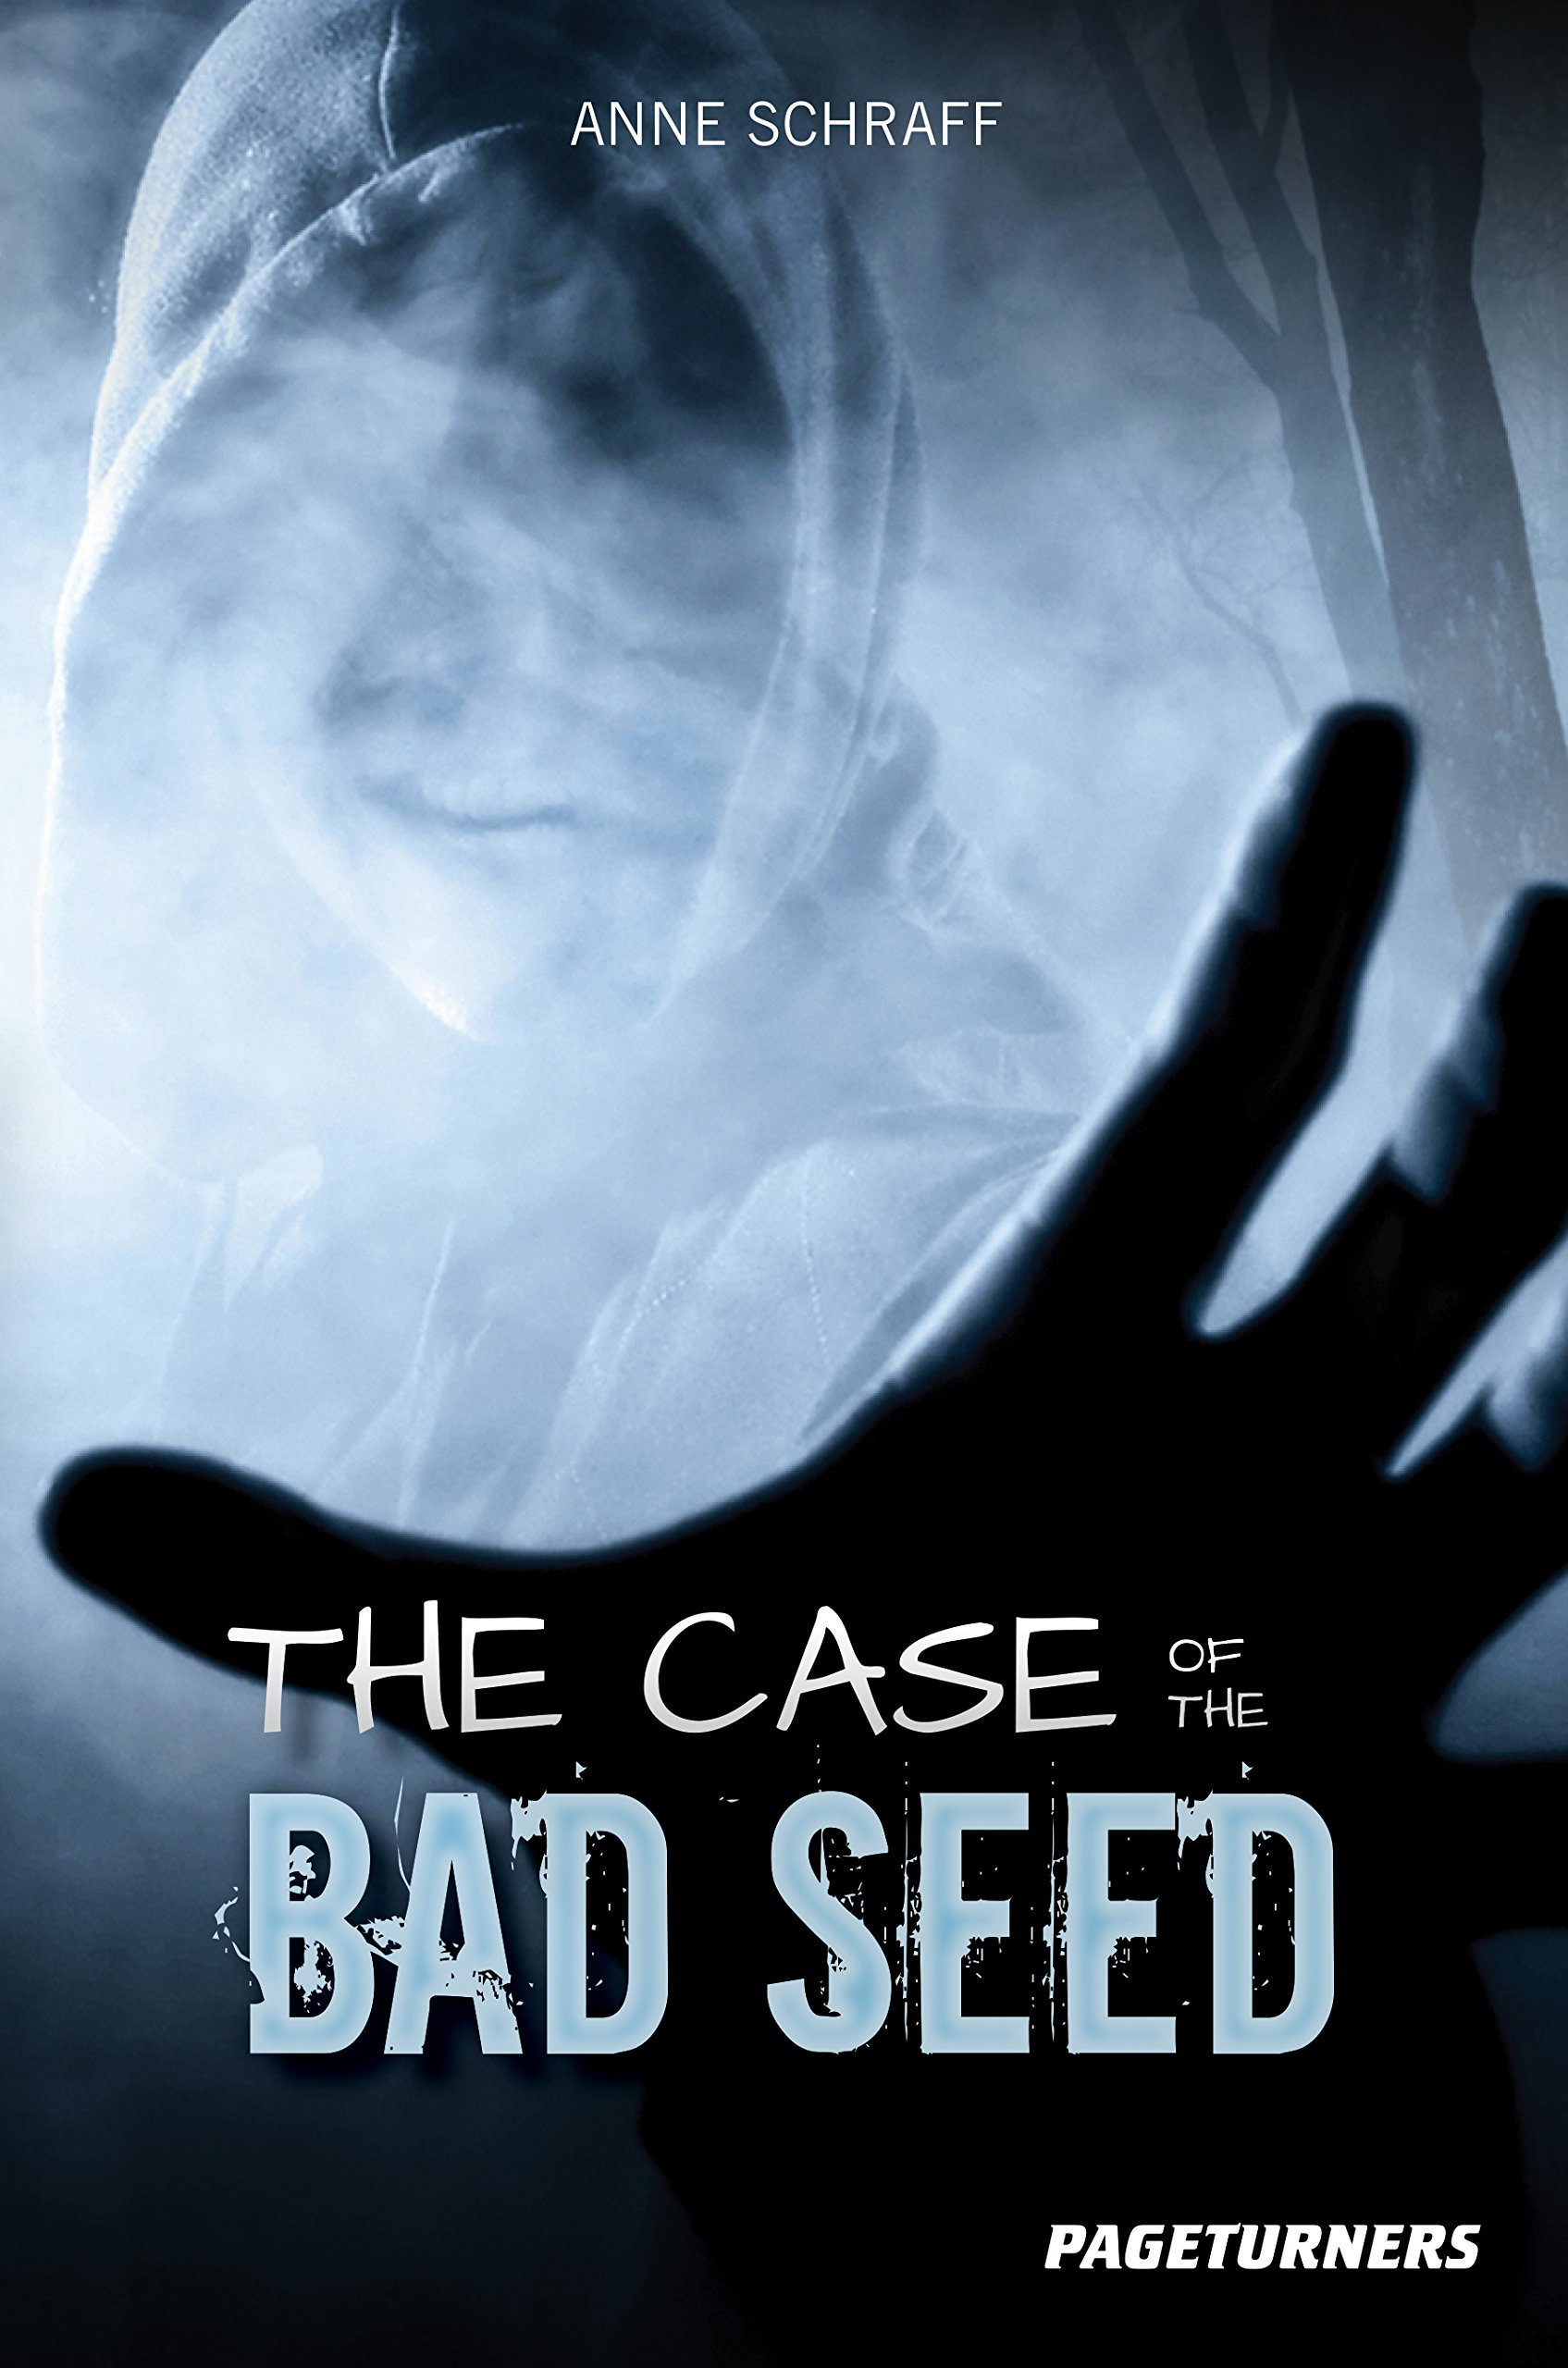 Download The Case of the Bad Seed (Detective) (Pageturners) pdf